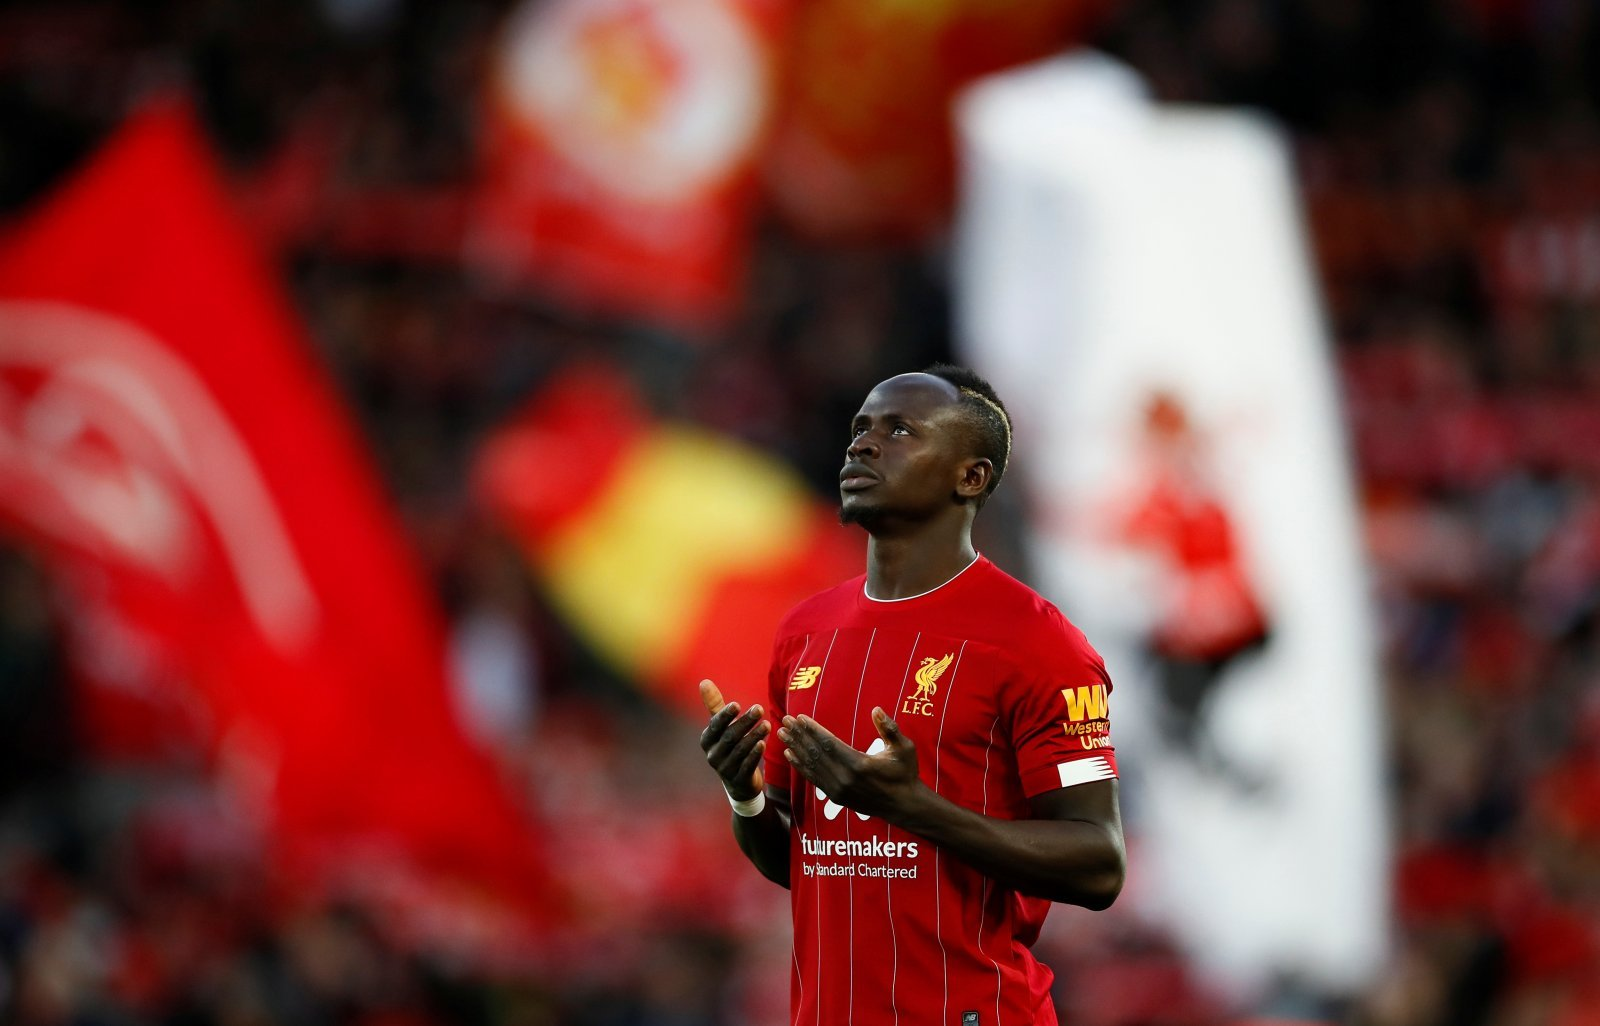 Liverpool: Fans laud Sadio Mane after performance in win over Everton